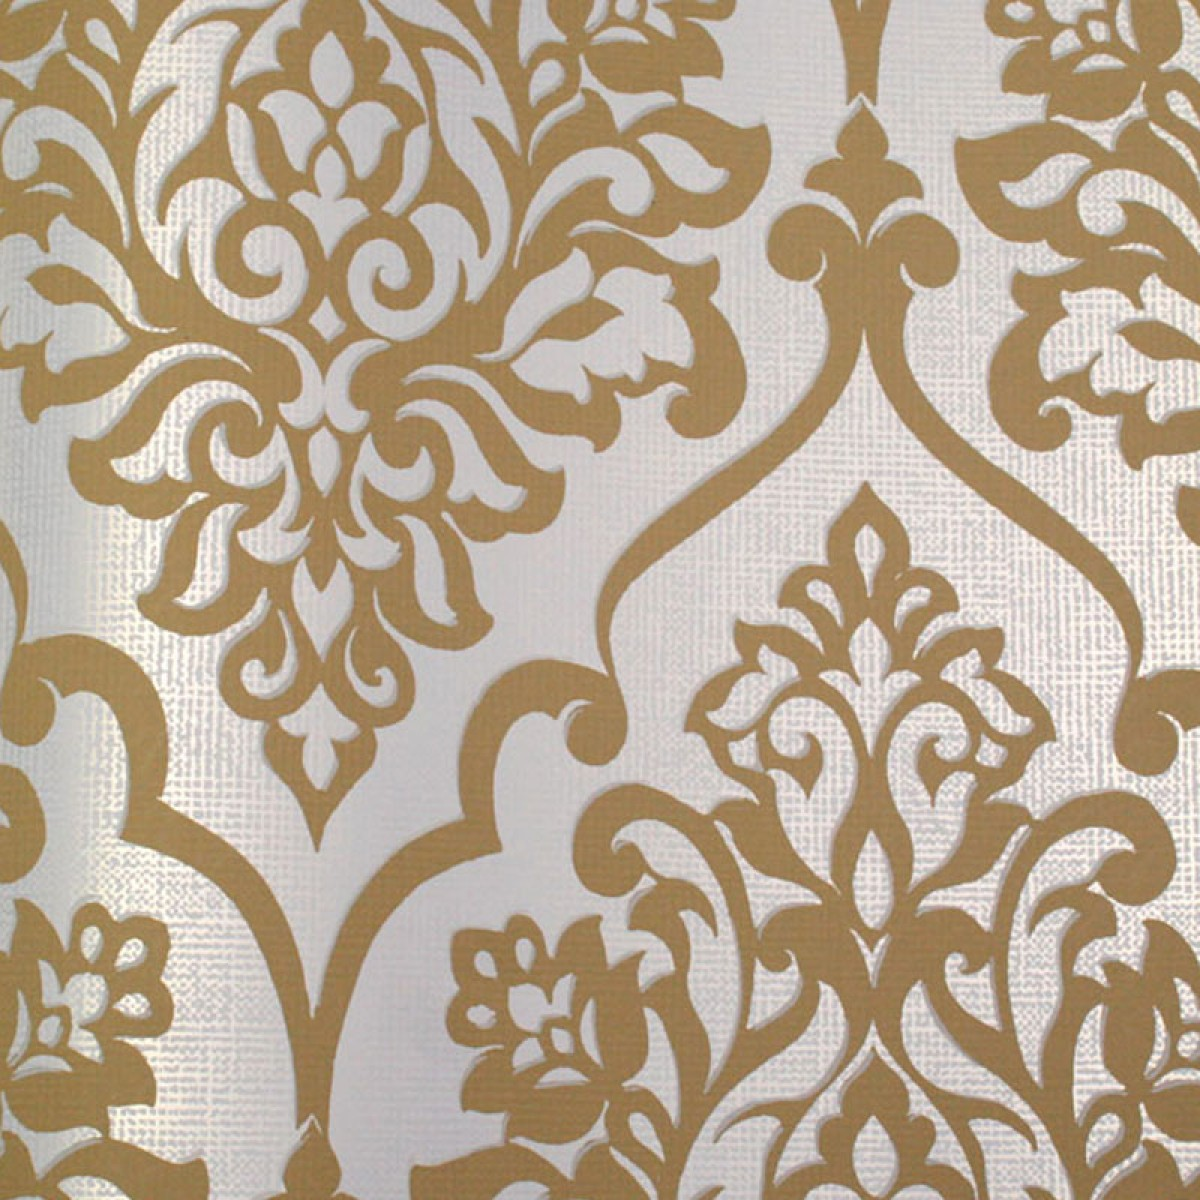 White and gold wallpaper wallpapersafari for Black white damask wallpaper mural